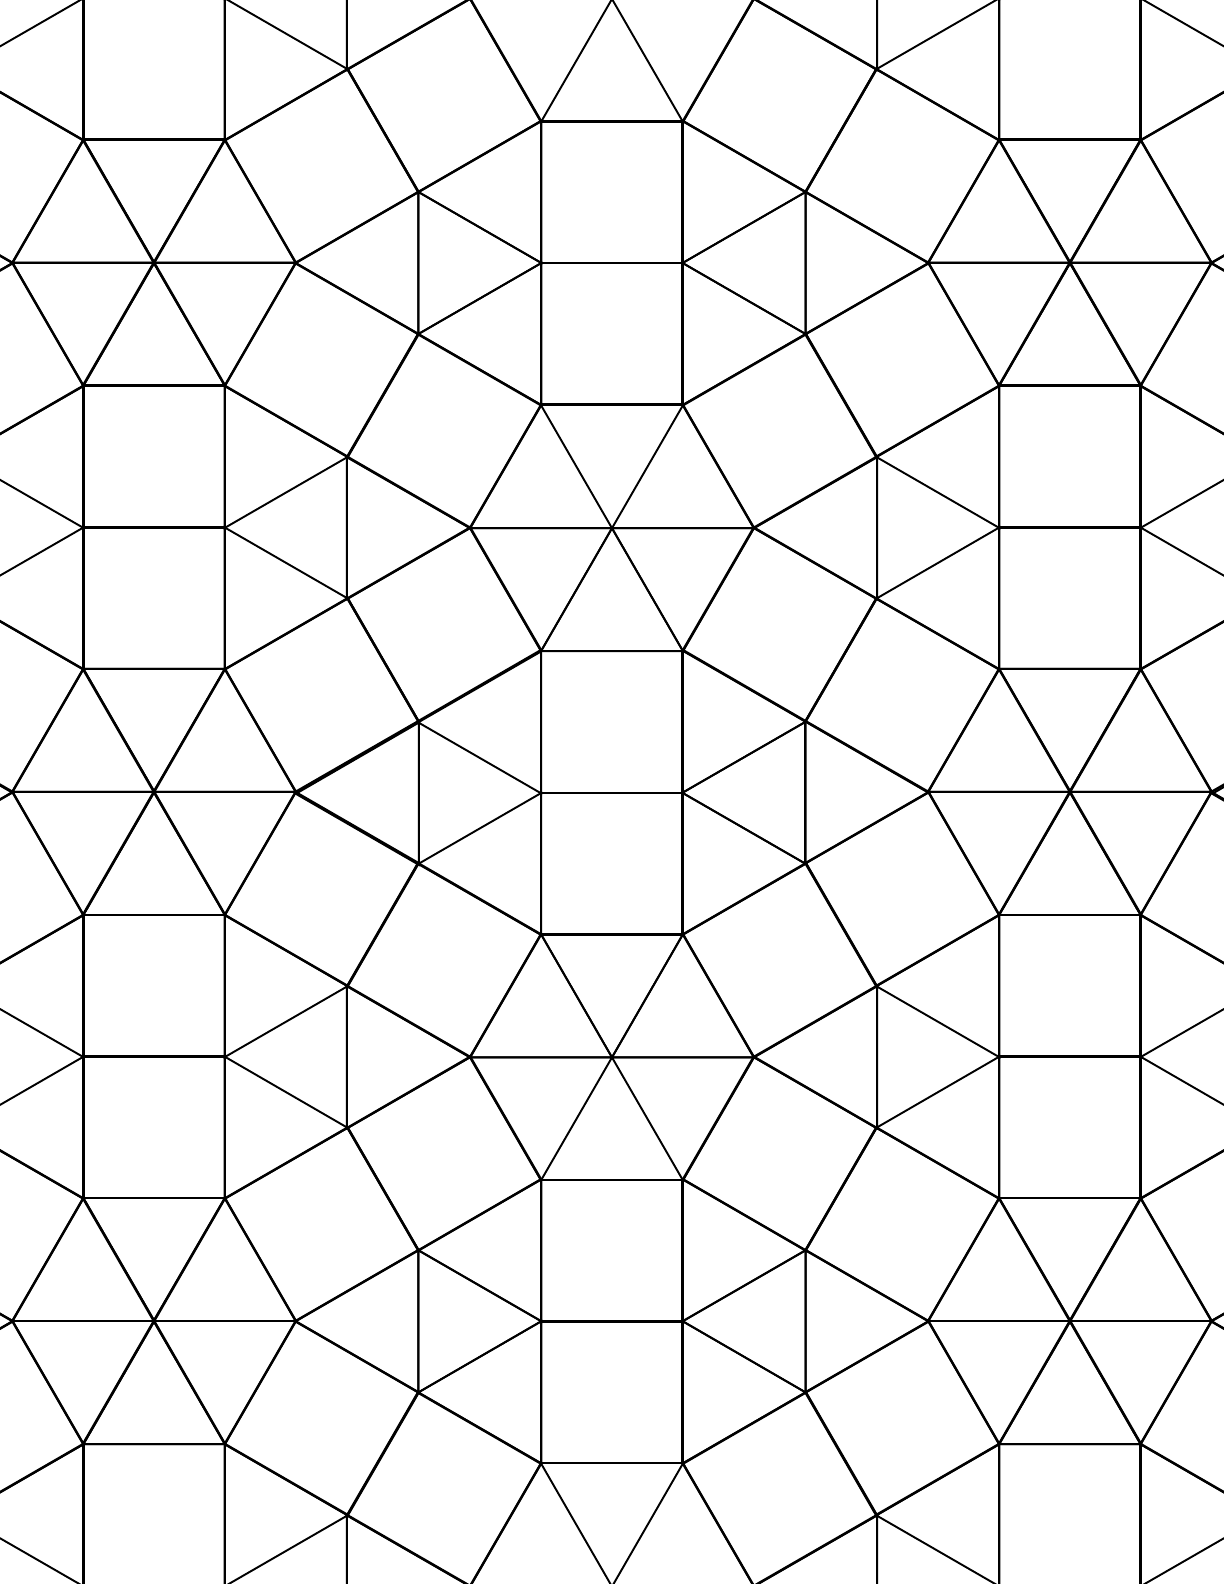 tessellation graph paper  3 3 3 3 3 3 3 3 4 3 4  free download